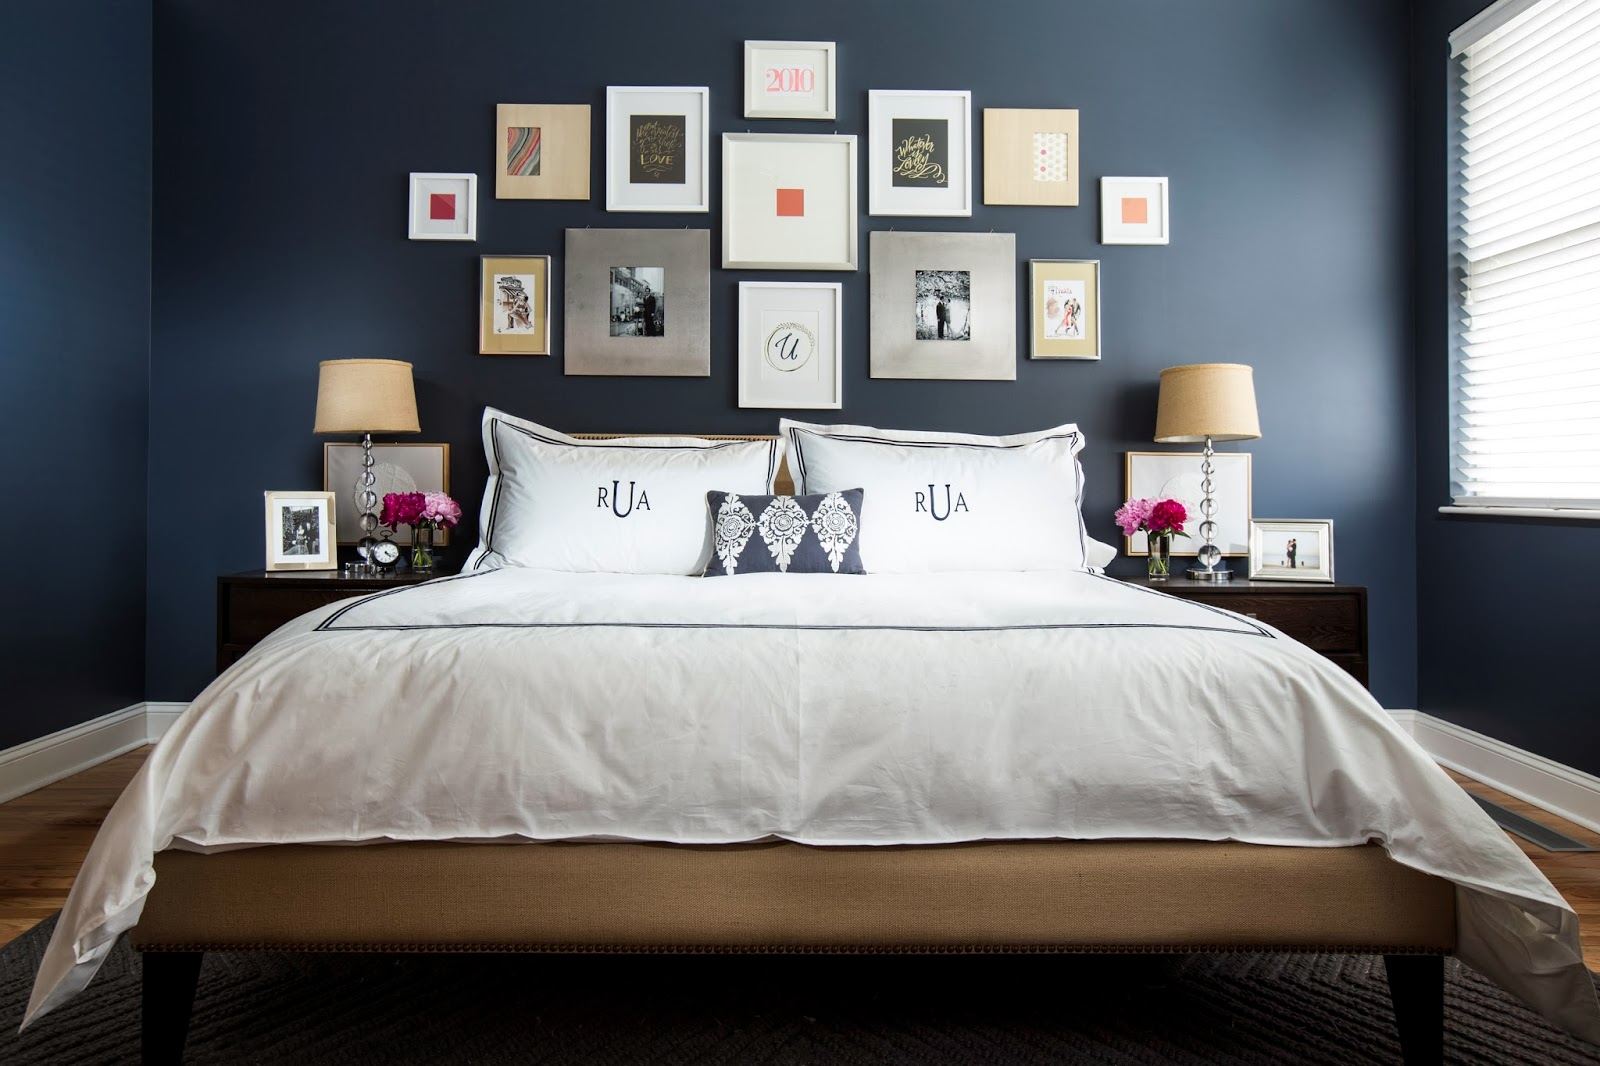 Bedroom Design Decor navy & dark blue bedroom design ideas & pictures